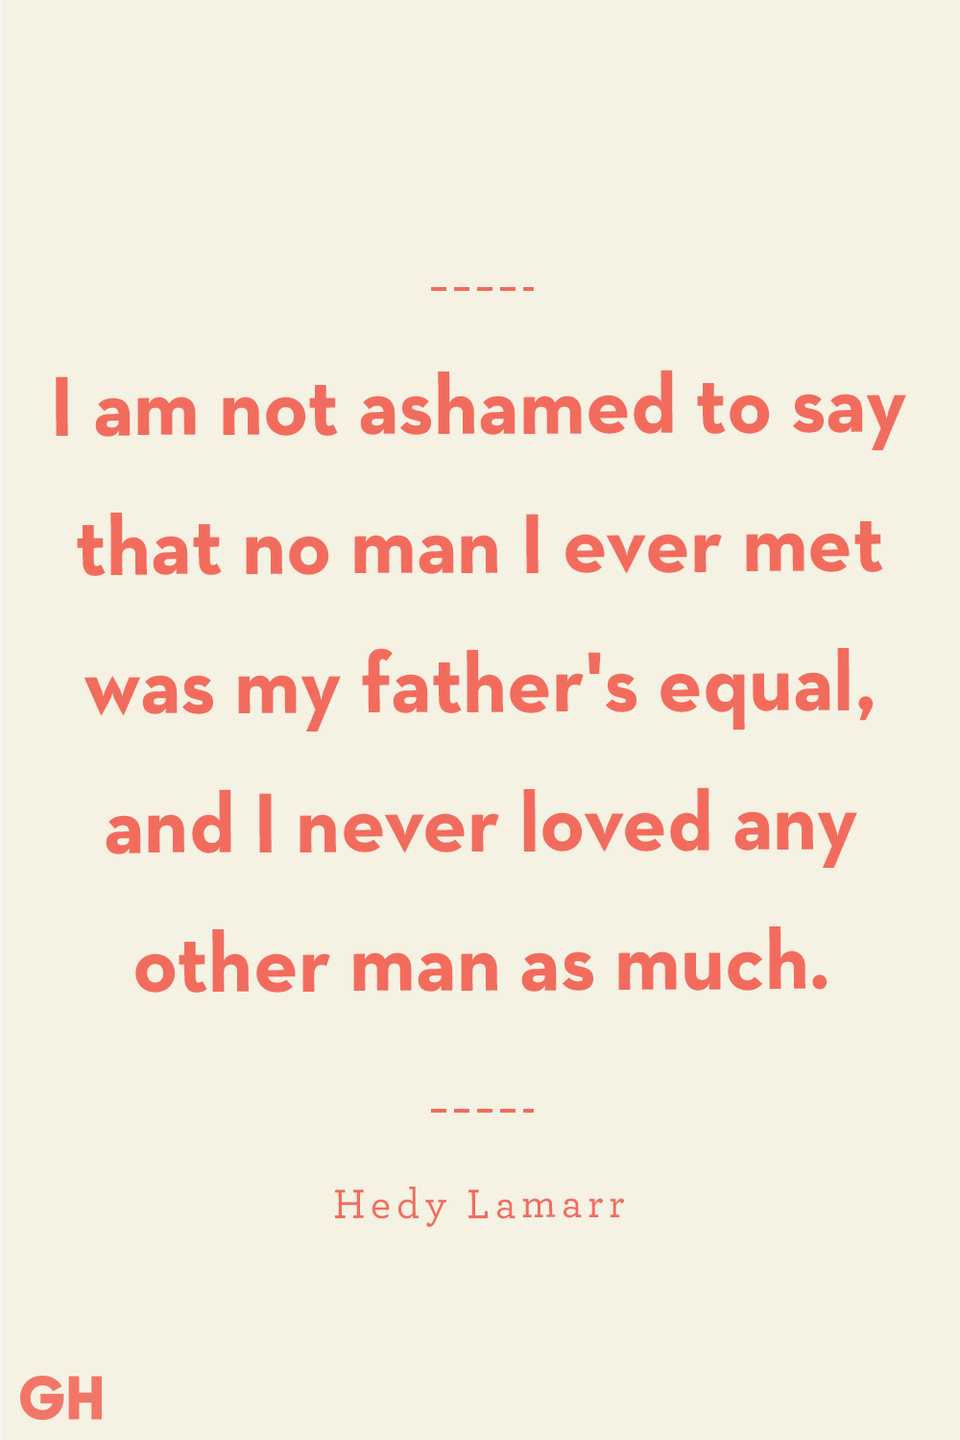 <p>I am not ashamed to say that no man I ever met was my father's equal, and I never loved any other man as much.</p>